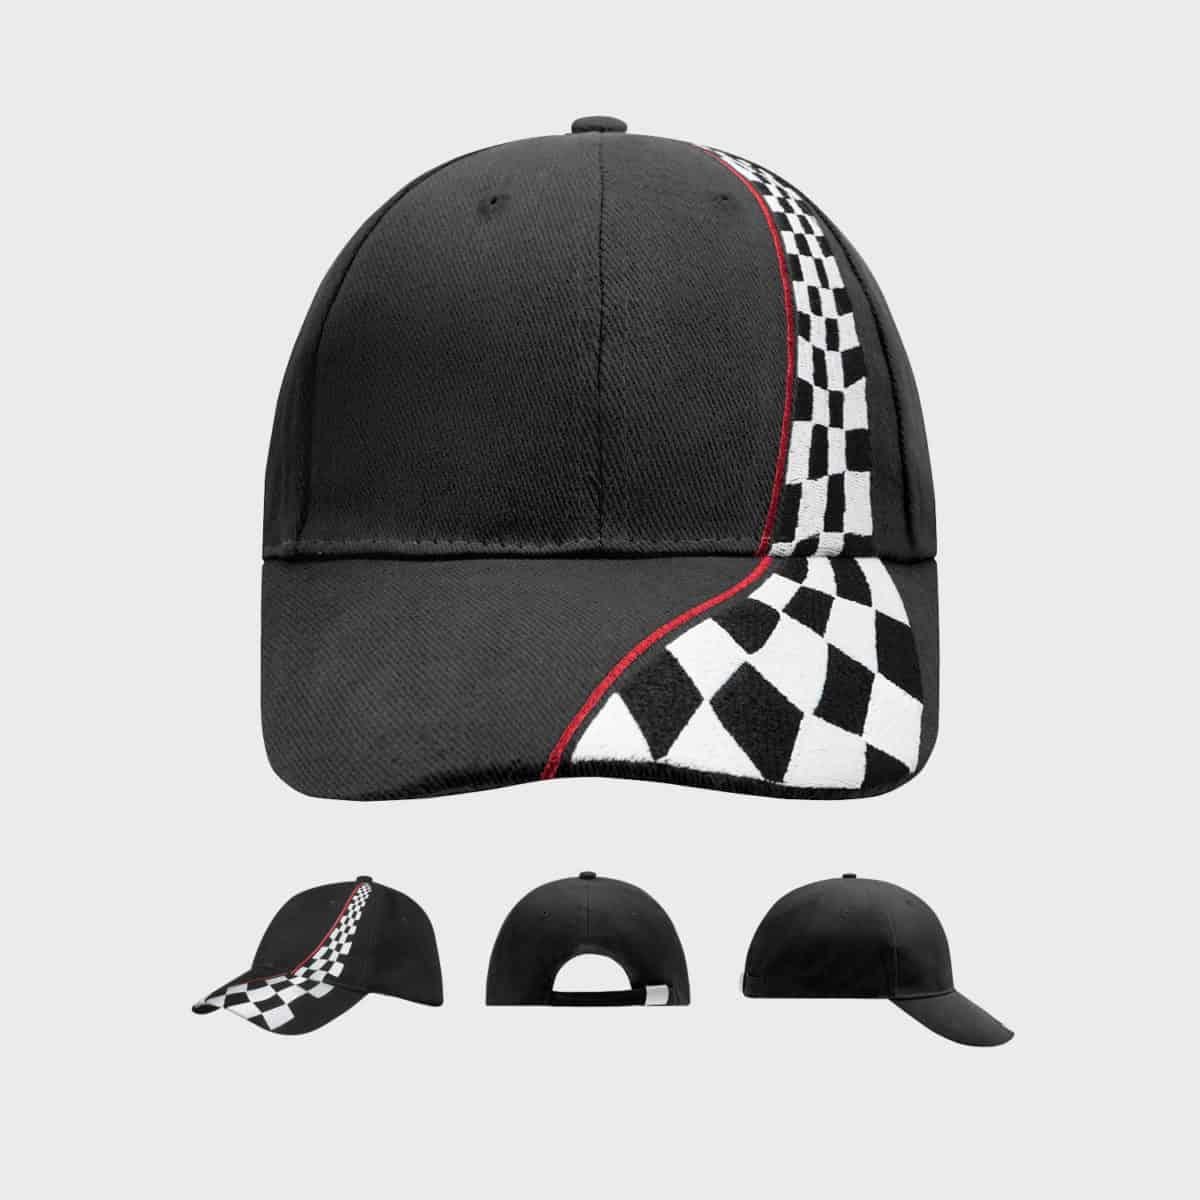 racing-cap-6-panel-unisex-black-kaufen-besticken_stickmanufaktur